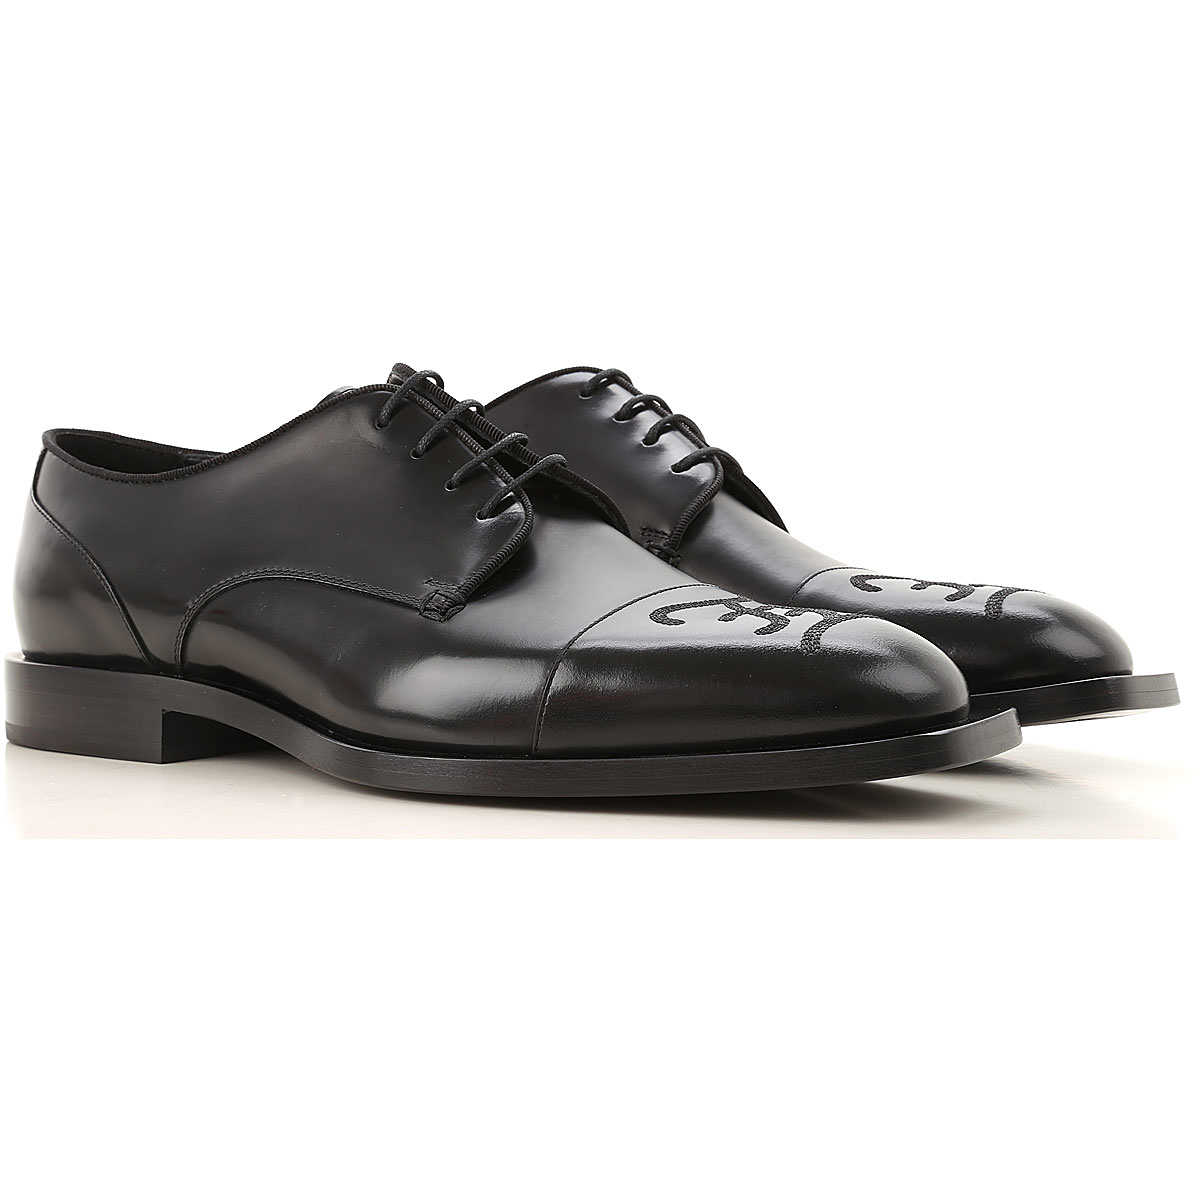 Fendi Lace Up Shoes for Men Oxfords Derbies and Brogues - GOOFASH